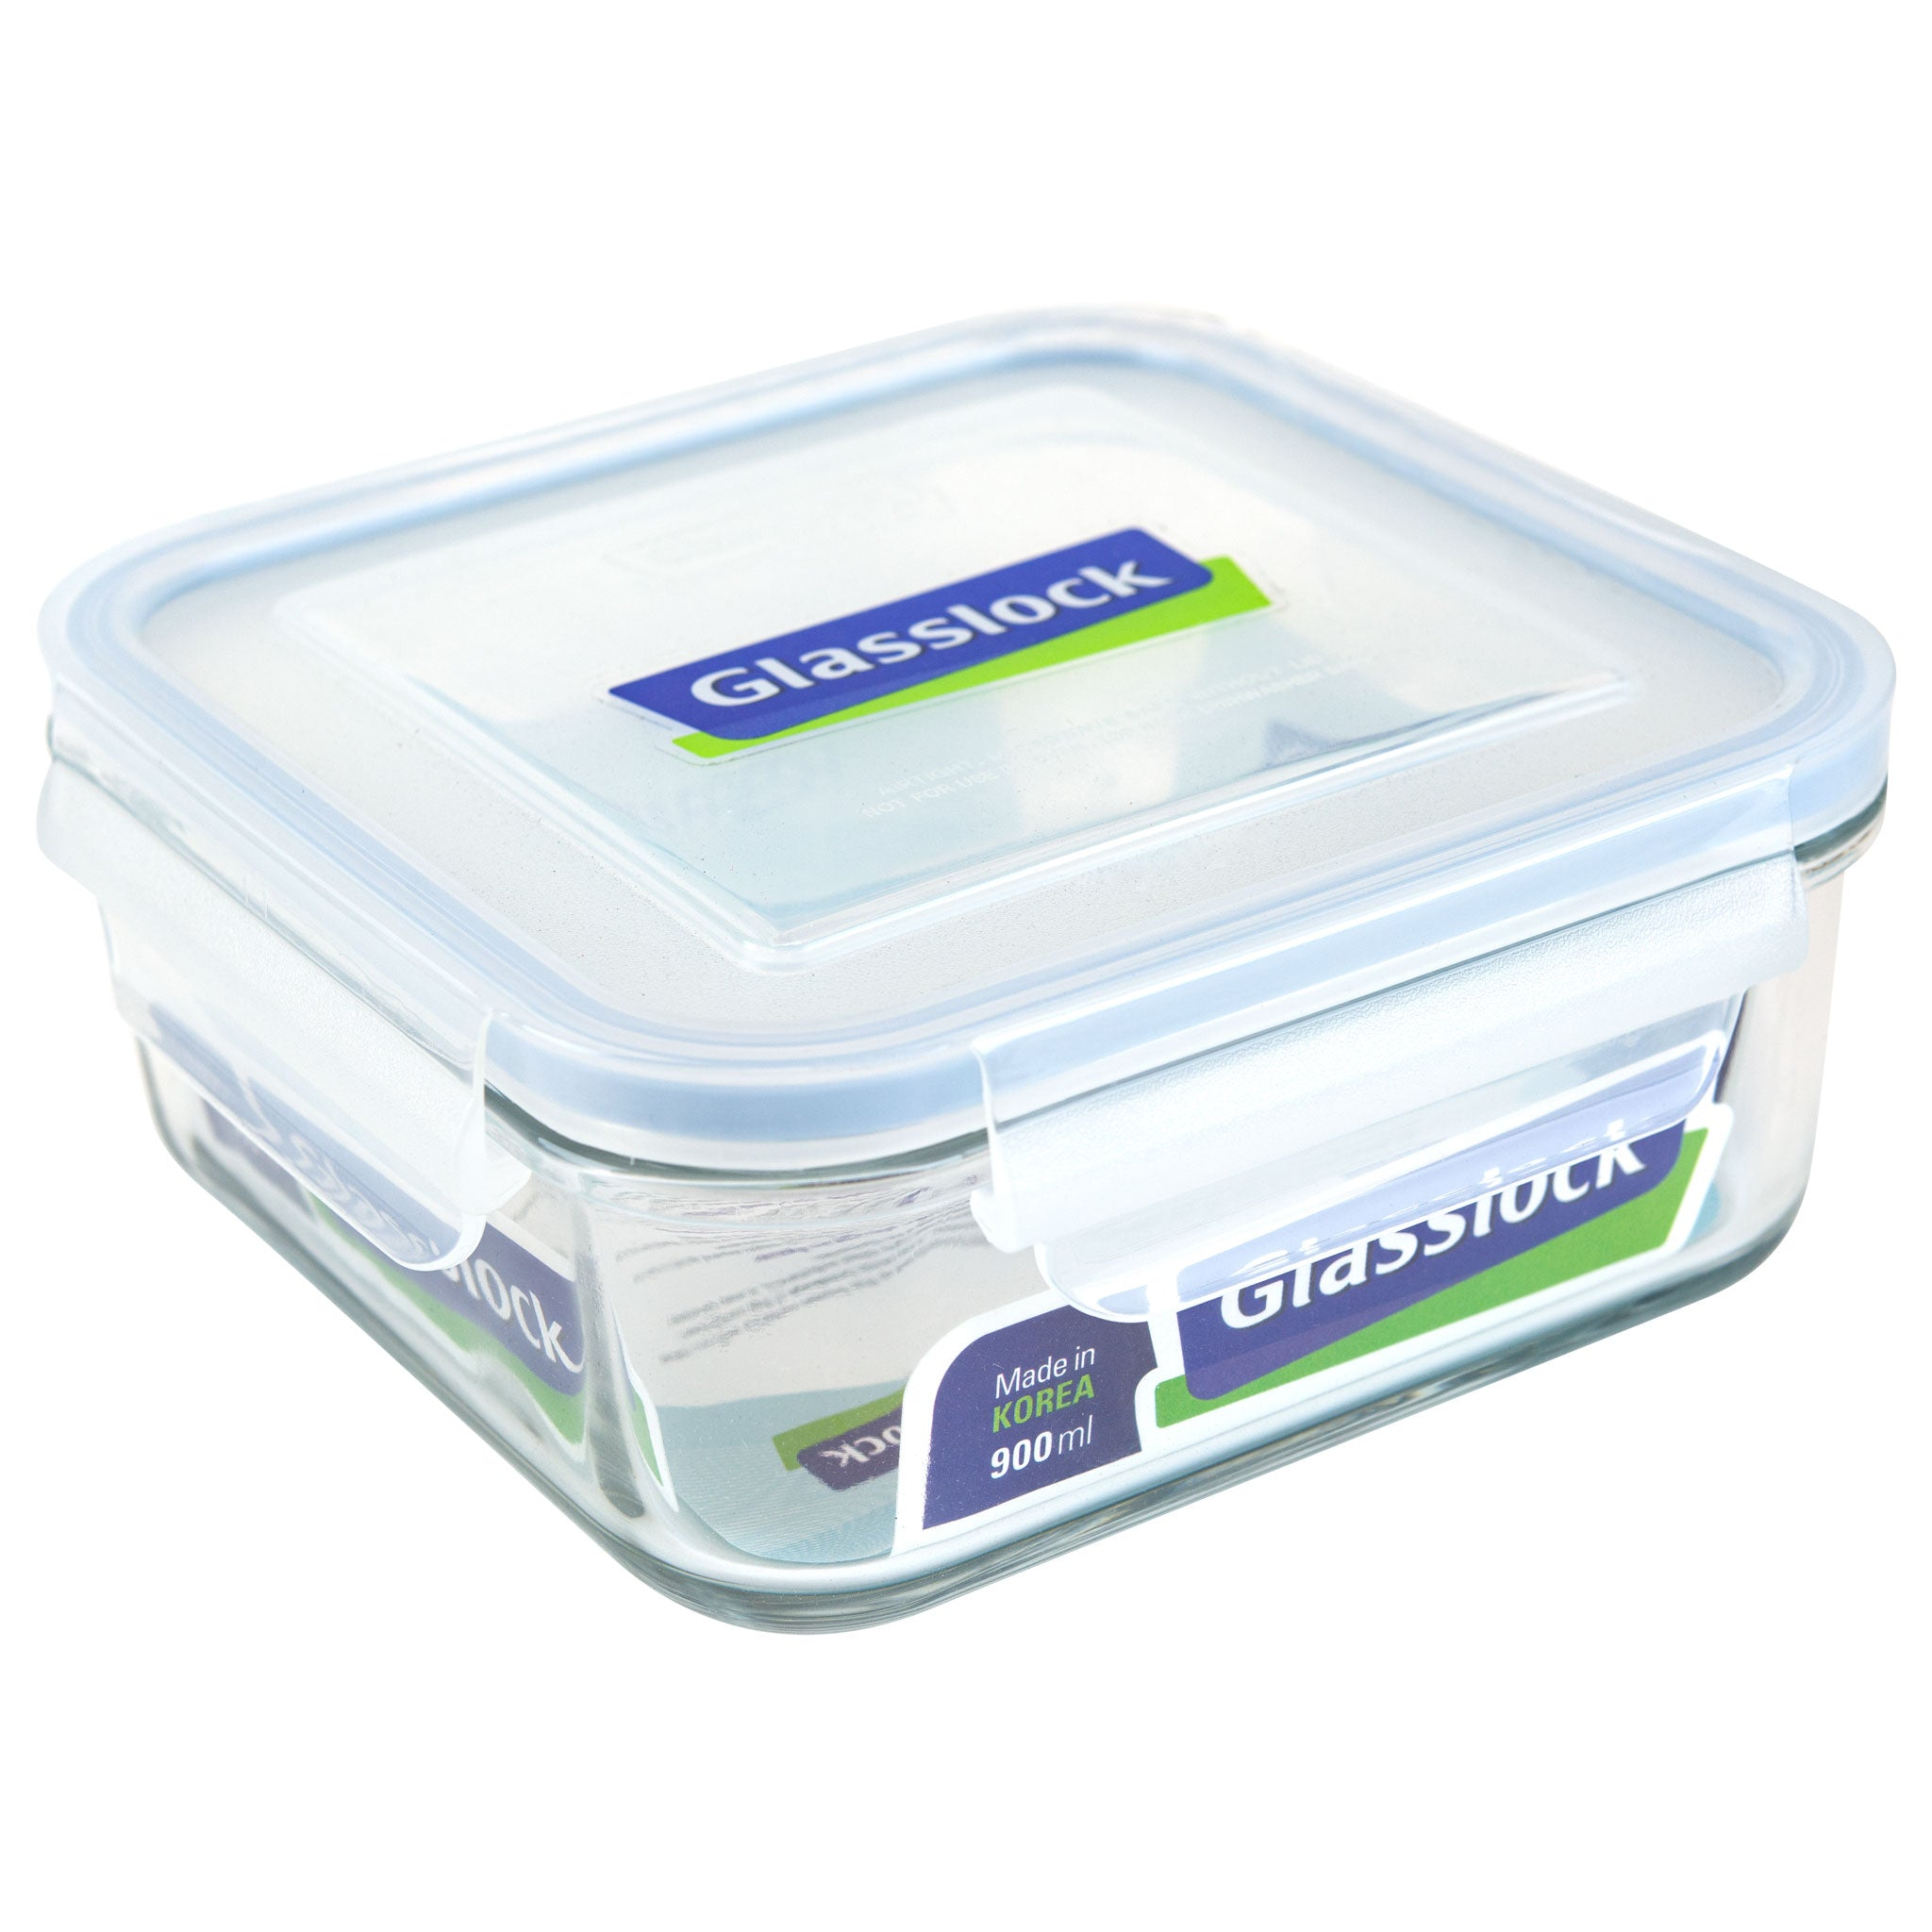 Glasslock Airtight Square Glass Storage Container (30 oz)